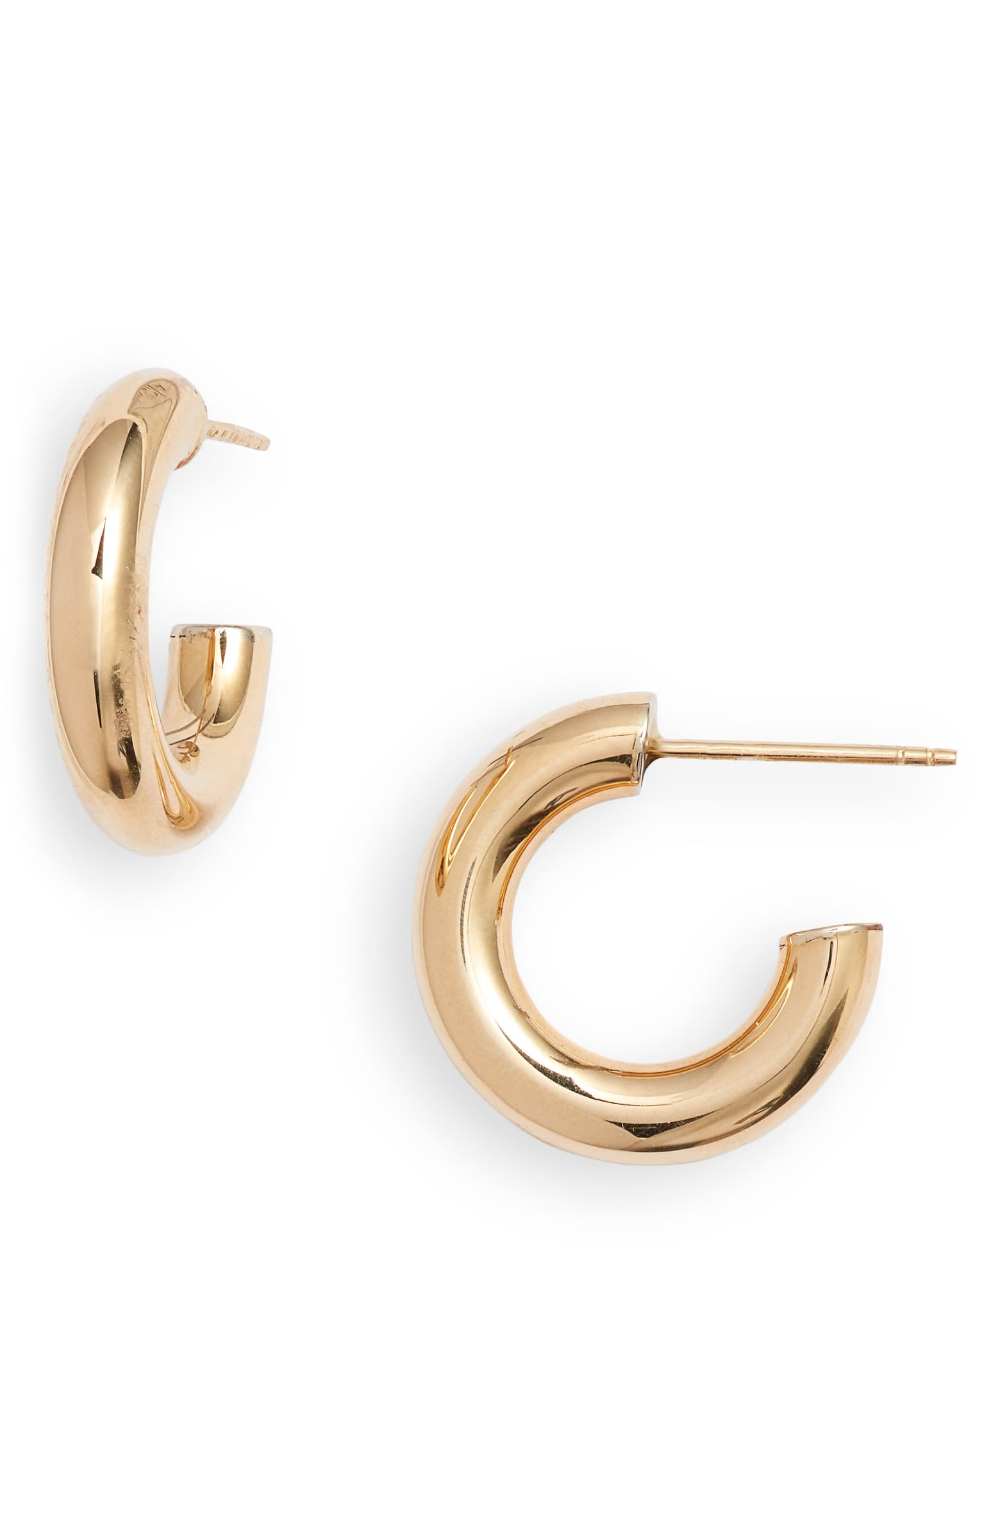 Bony Levy 14k Gold Small Thick Hoop Earrings Nordstrom Exclusive Nordstrom In 2021 Small Gold Hoop Earrings 14k Gold Hoop Earrings Hoop Earrings